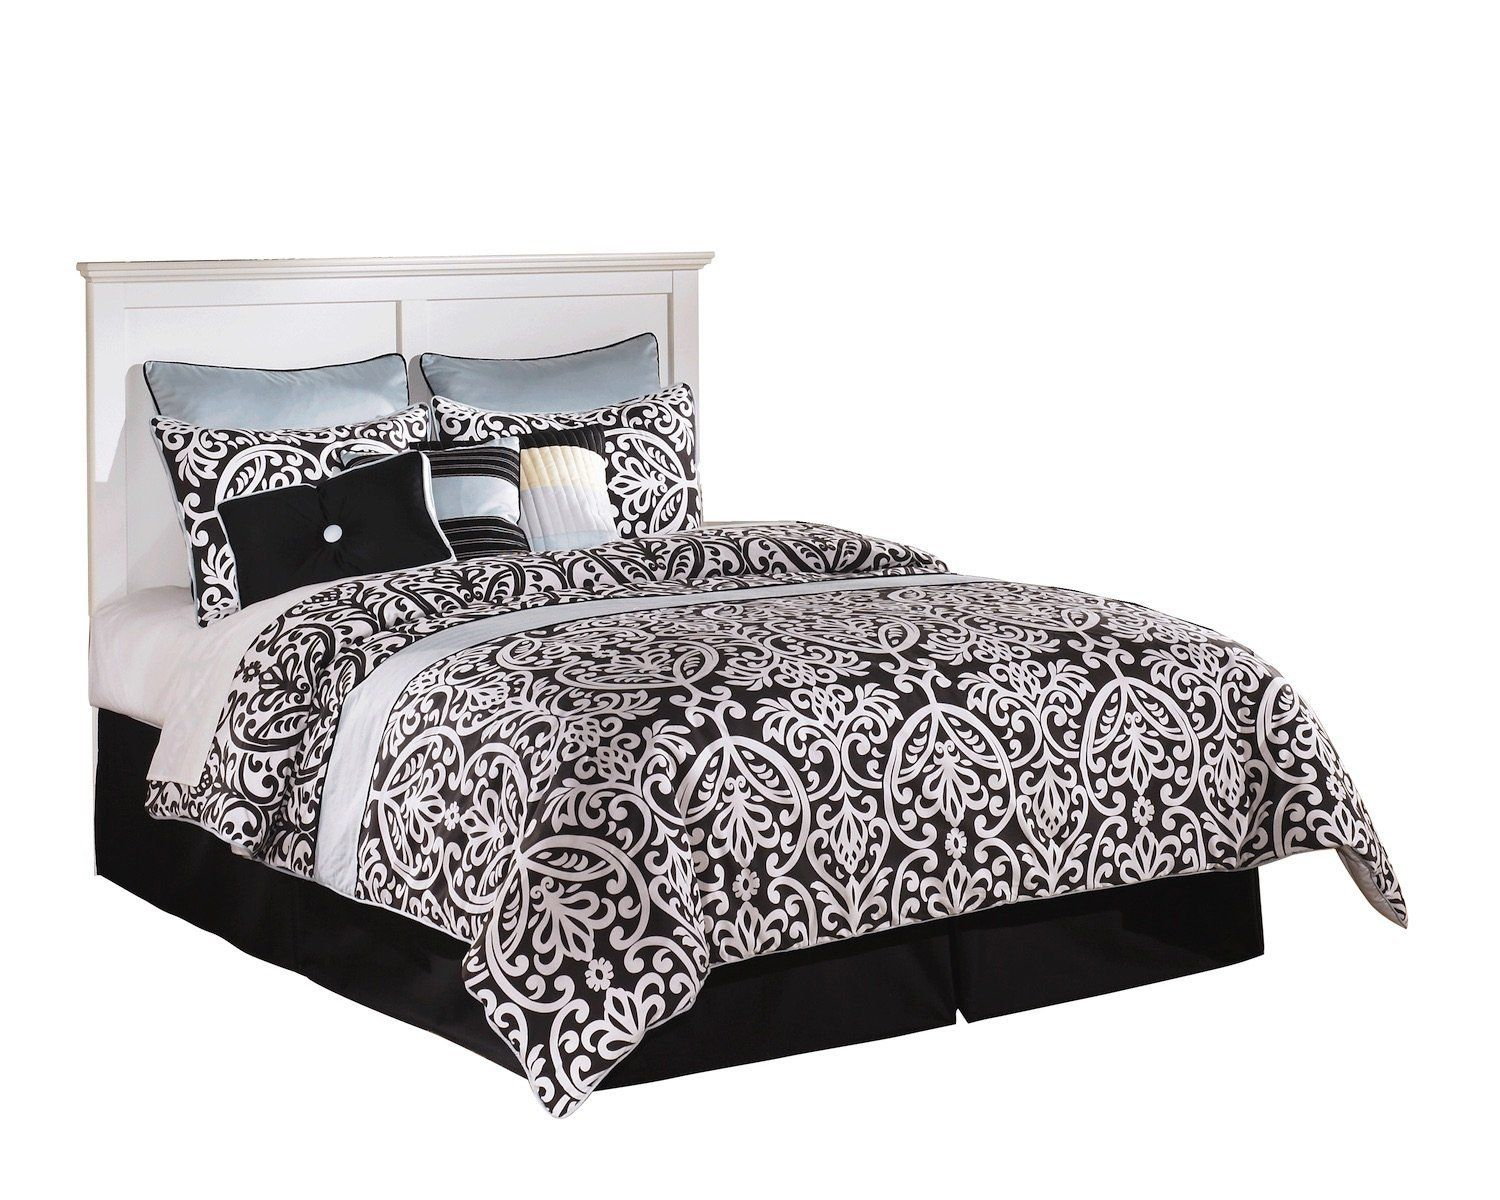 Ashley Bostwick Shoals 6 PC E King Panel Headboard Bedroom Set with ...